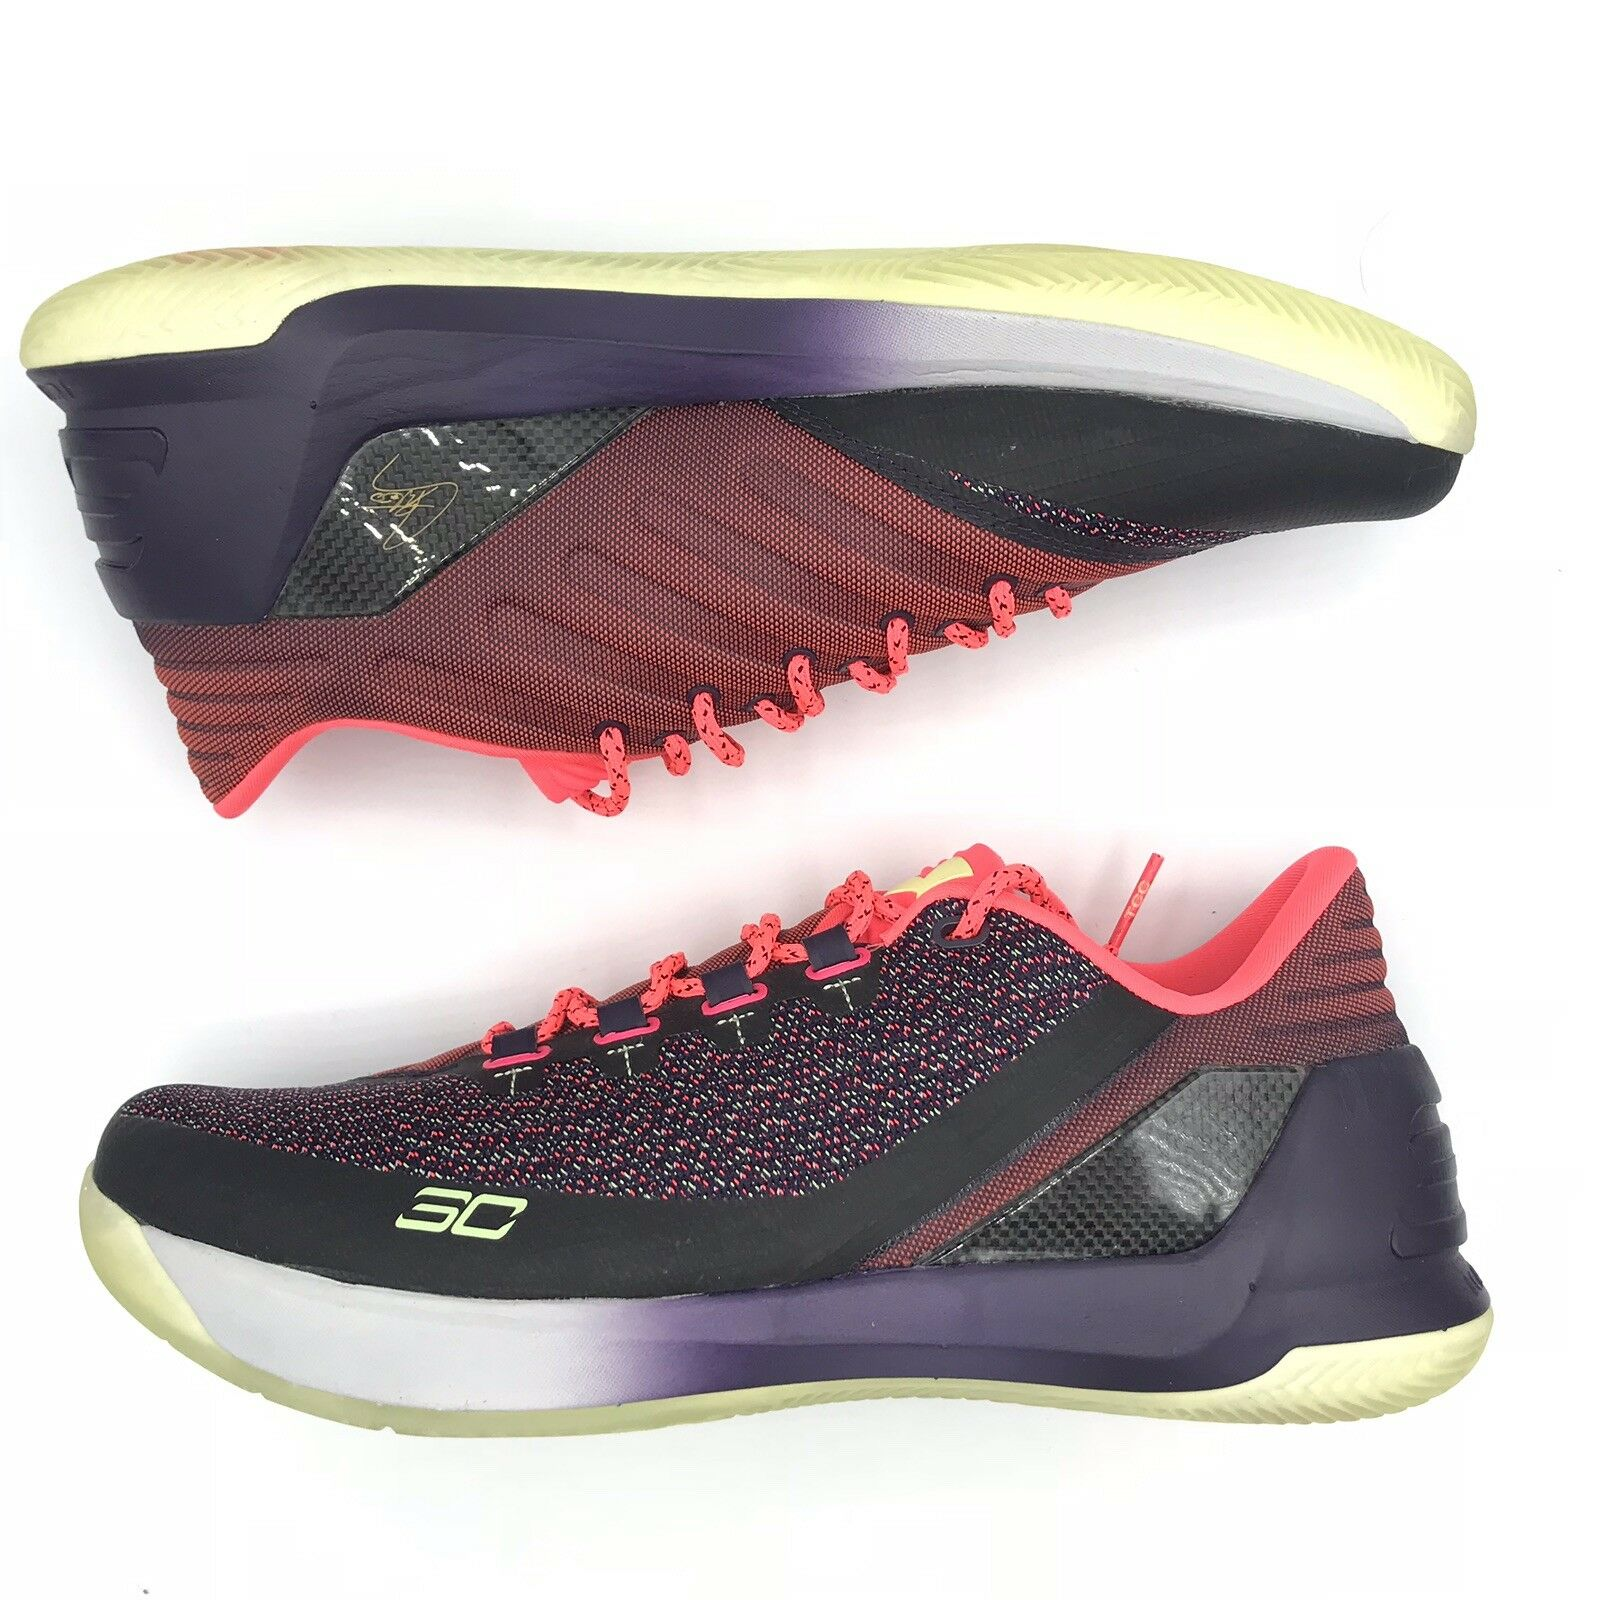 Curry 3 Low Full Circle Basketball schuhe 1286376 101 Größe 12 New  Under Armour